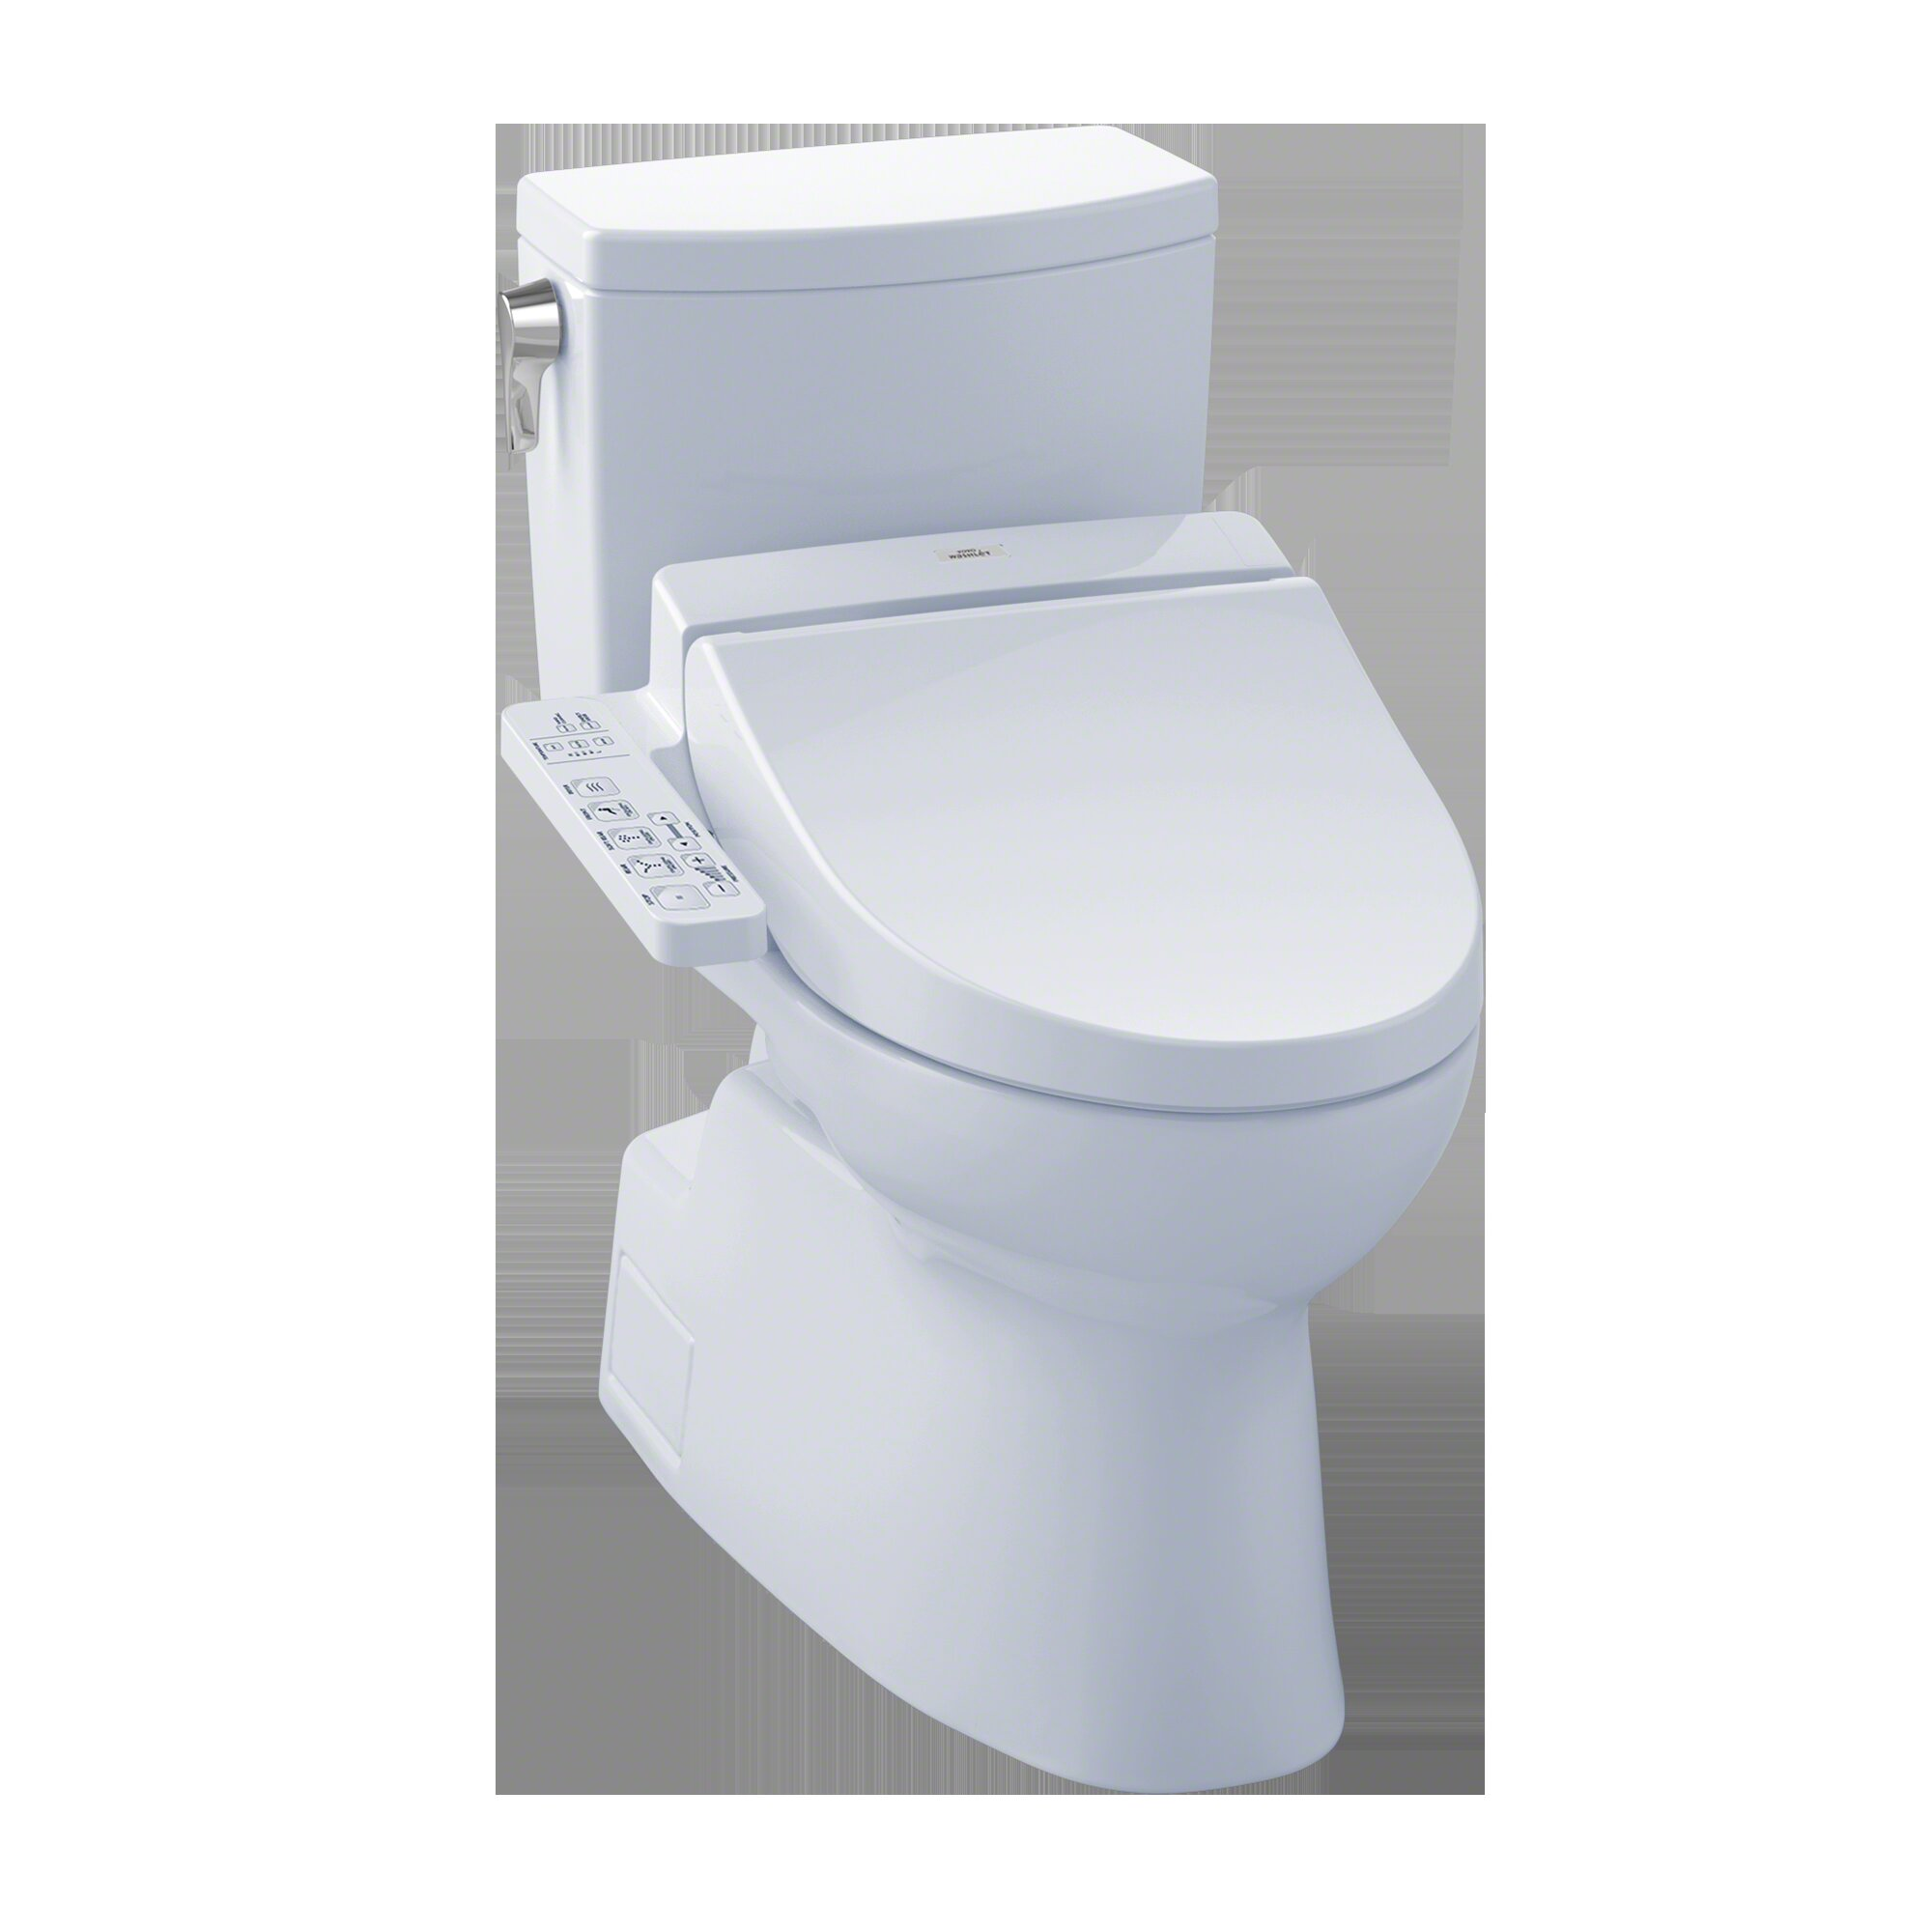 Pleasant Vespin Ii 1 0 Gpf Elongated Two Piece Toilet With C100 Electronic Bidet Seat Squirreltailoven Fun Painted Chair Ideas Images Squirreltailovenorg